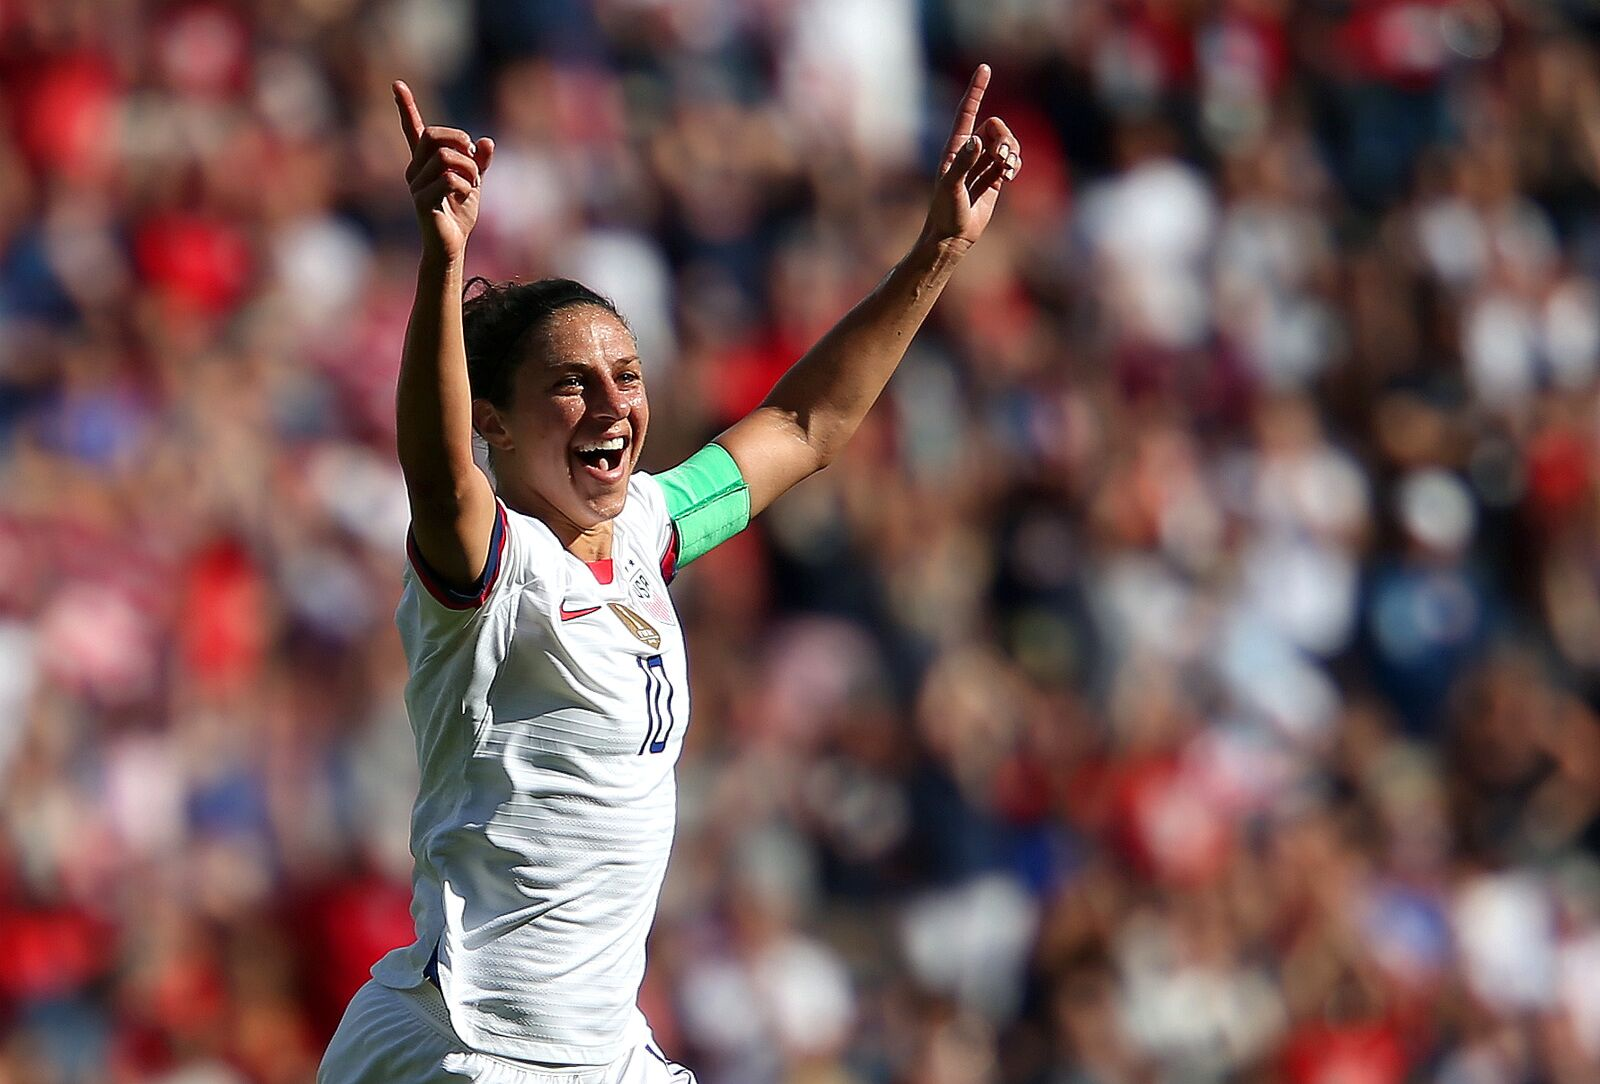 Carli Lloyd breaks World Cup record with absolute rocket (Video)